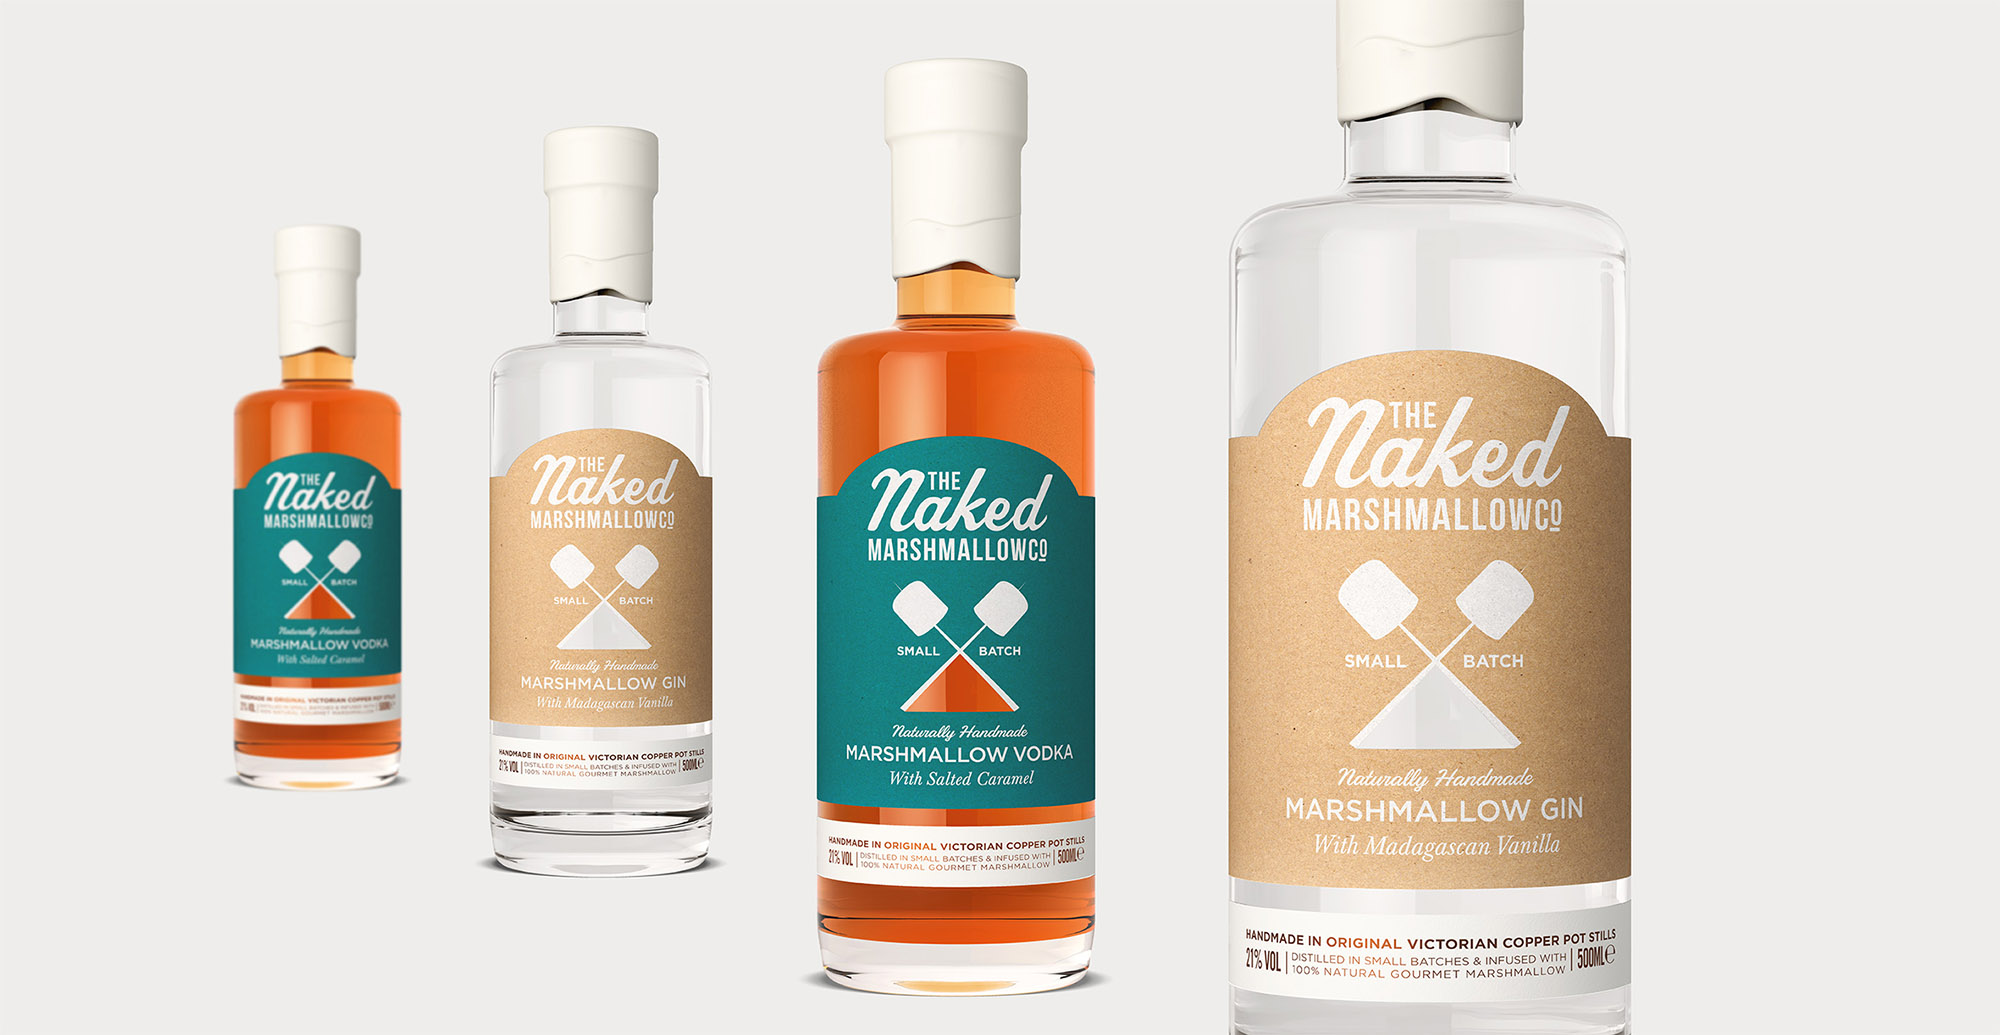 Branding and packaging design for confectionary brand The Naked Marshmallow Co by Design Happy London - Gin label and structure design 3D render